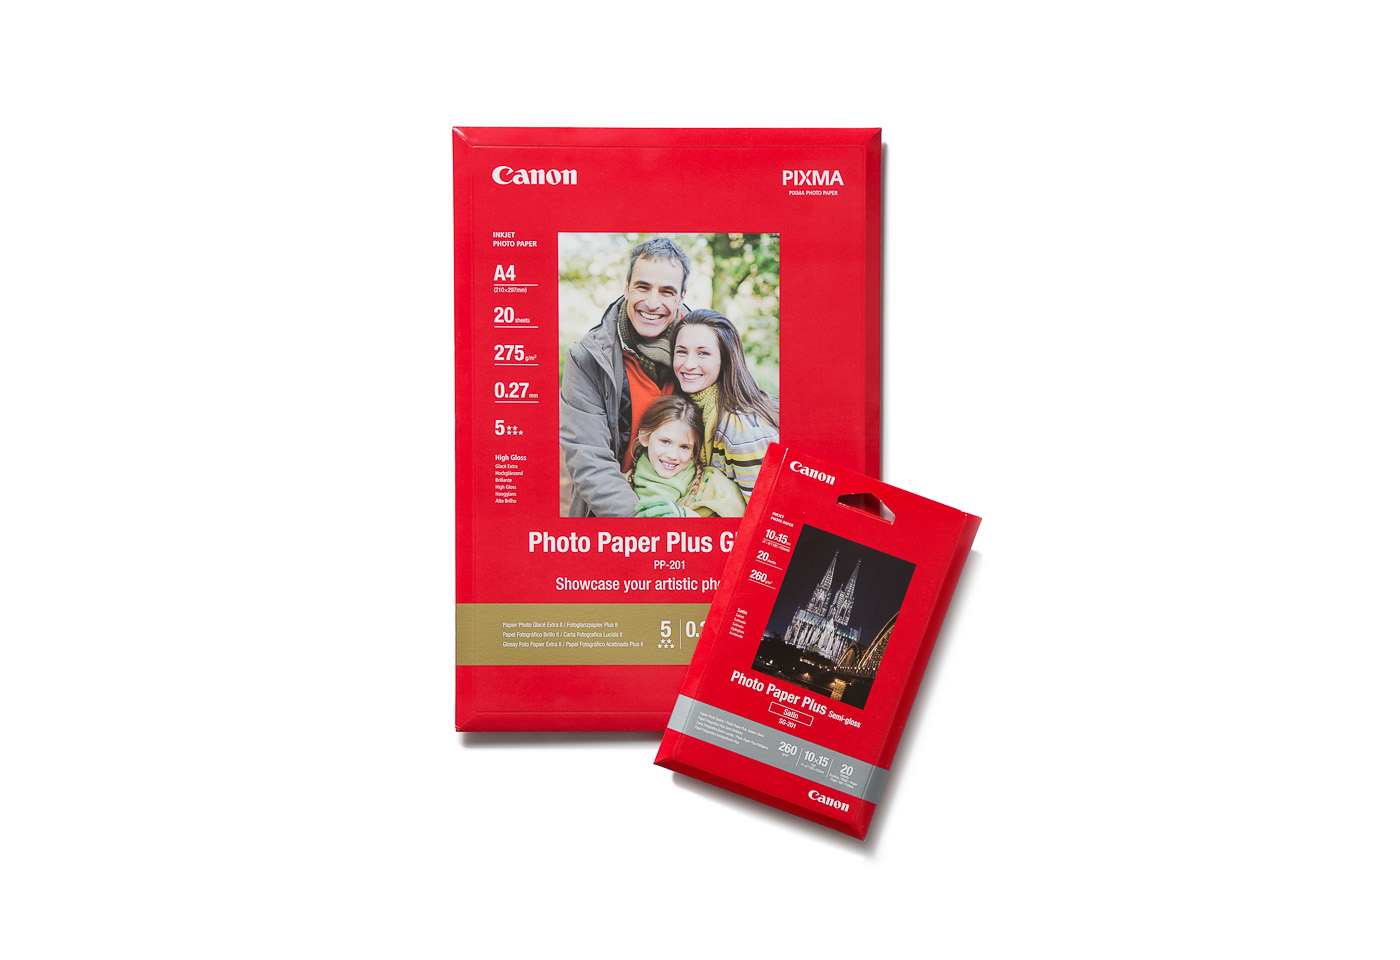 Canon PIXMA paper options